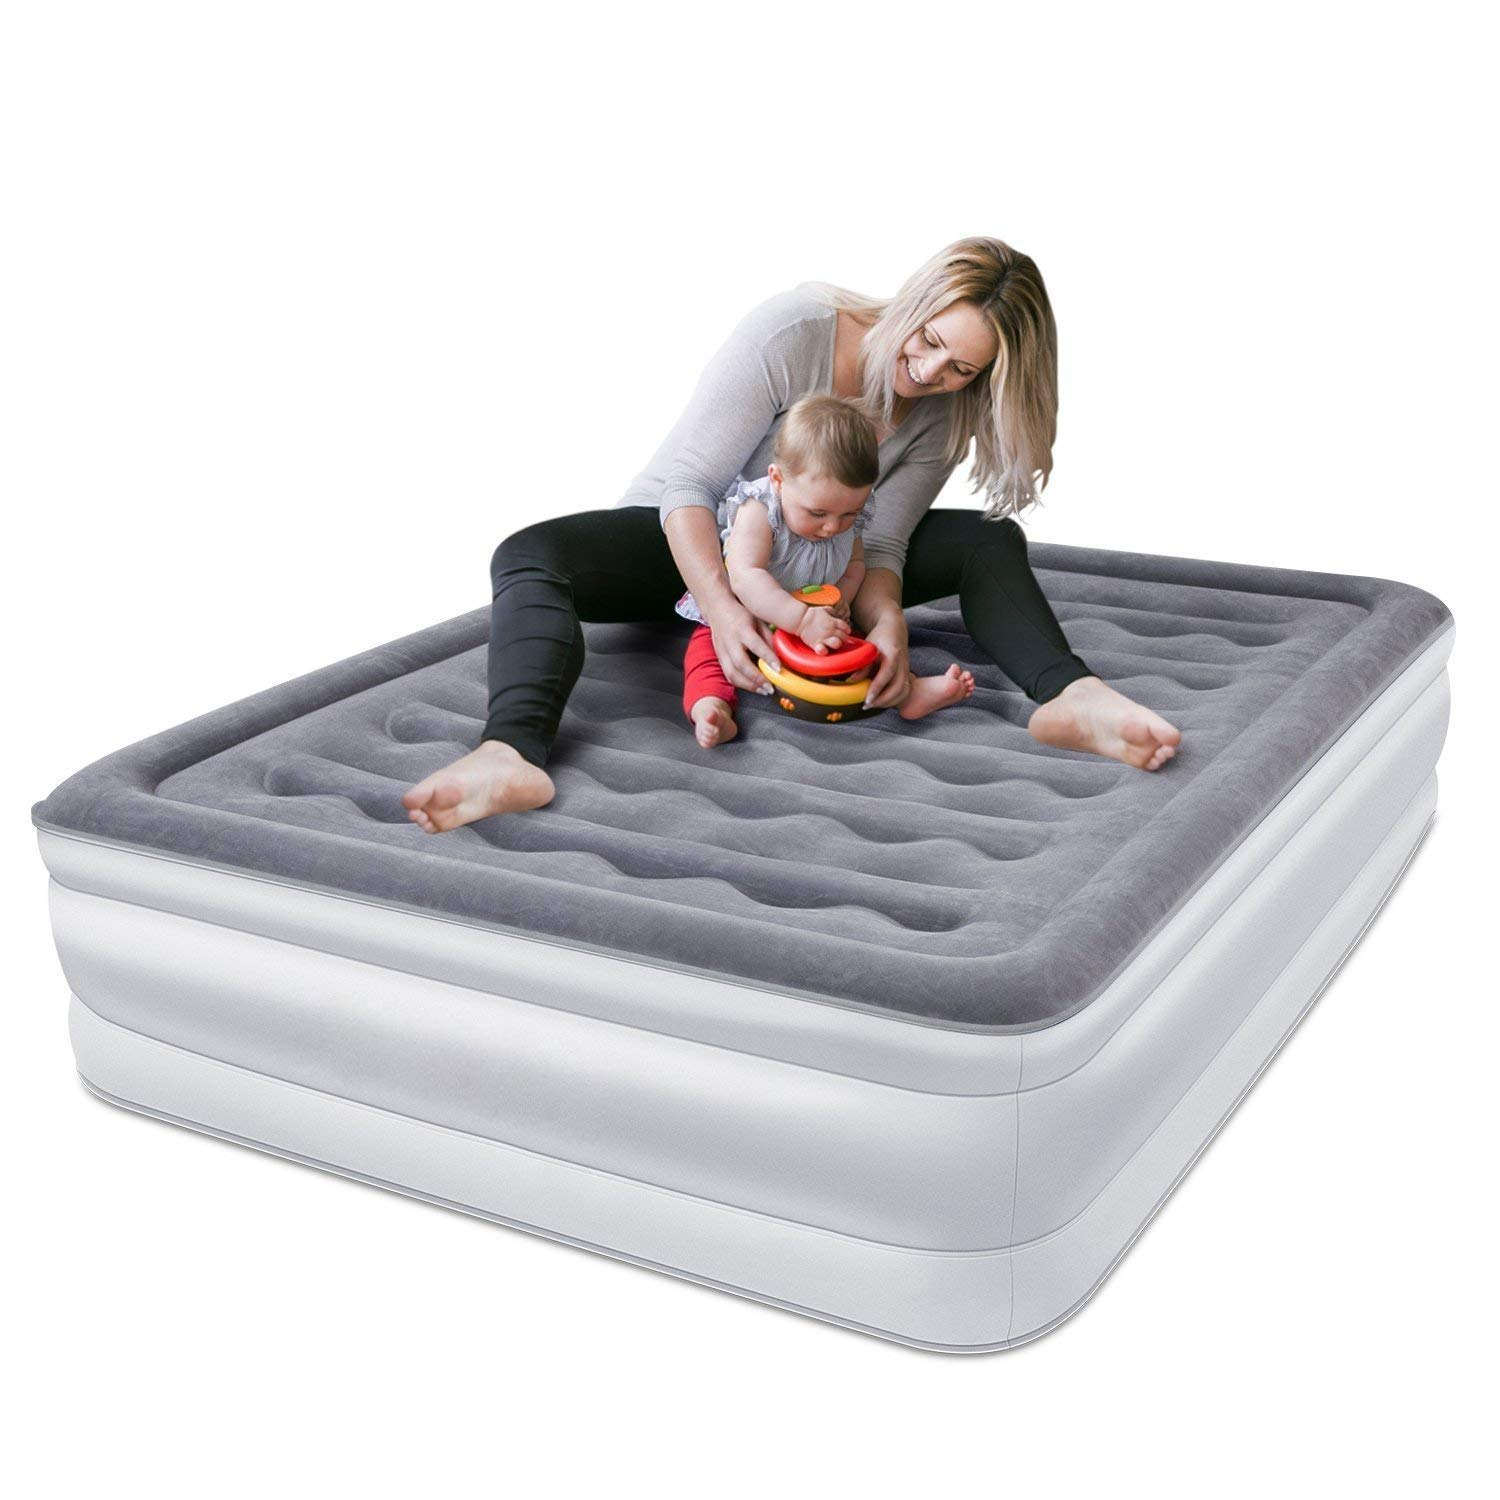 SPREEY Air Mattress Air Bed with Comfort Coil Technology & Built-in Electric Pump, Queen Inflatable Mattress Bed Soft Flocking Layer Comfortable and Portable Equipped Fashion Storage Bag